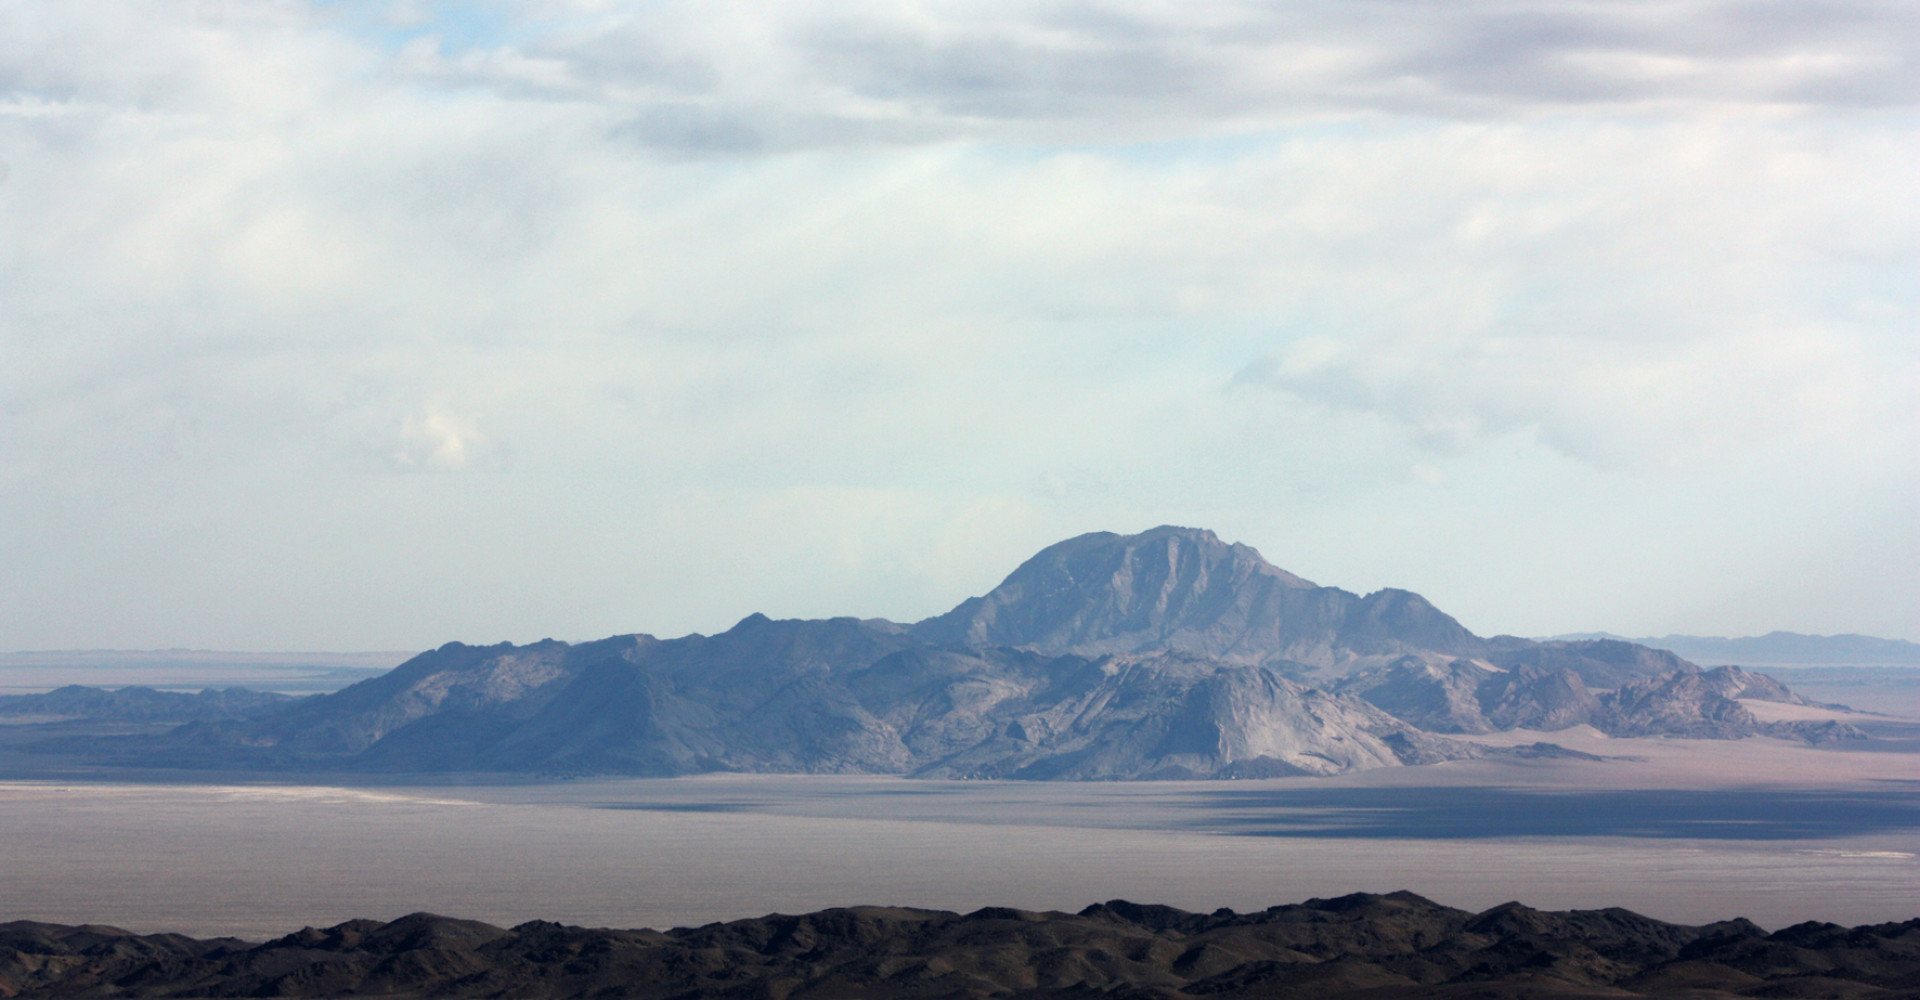 Eej Khairkhan mountain